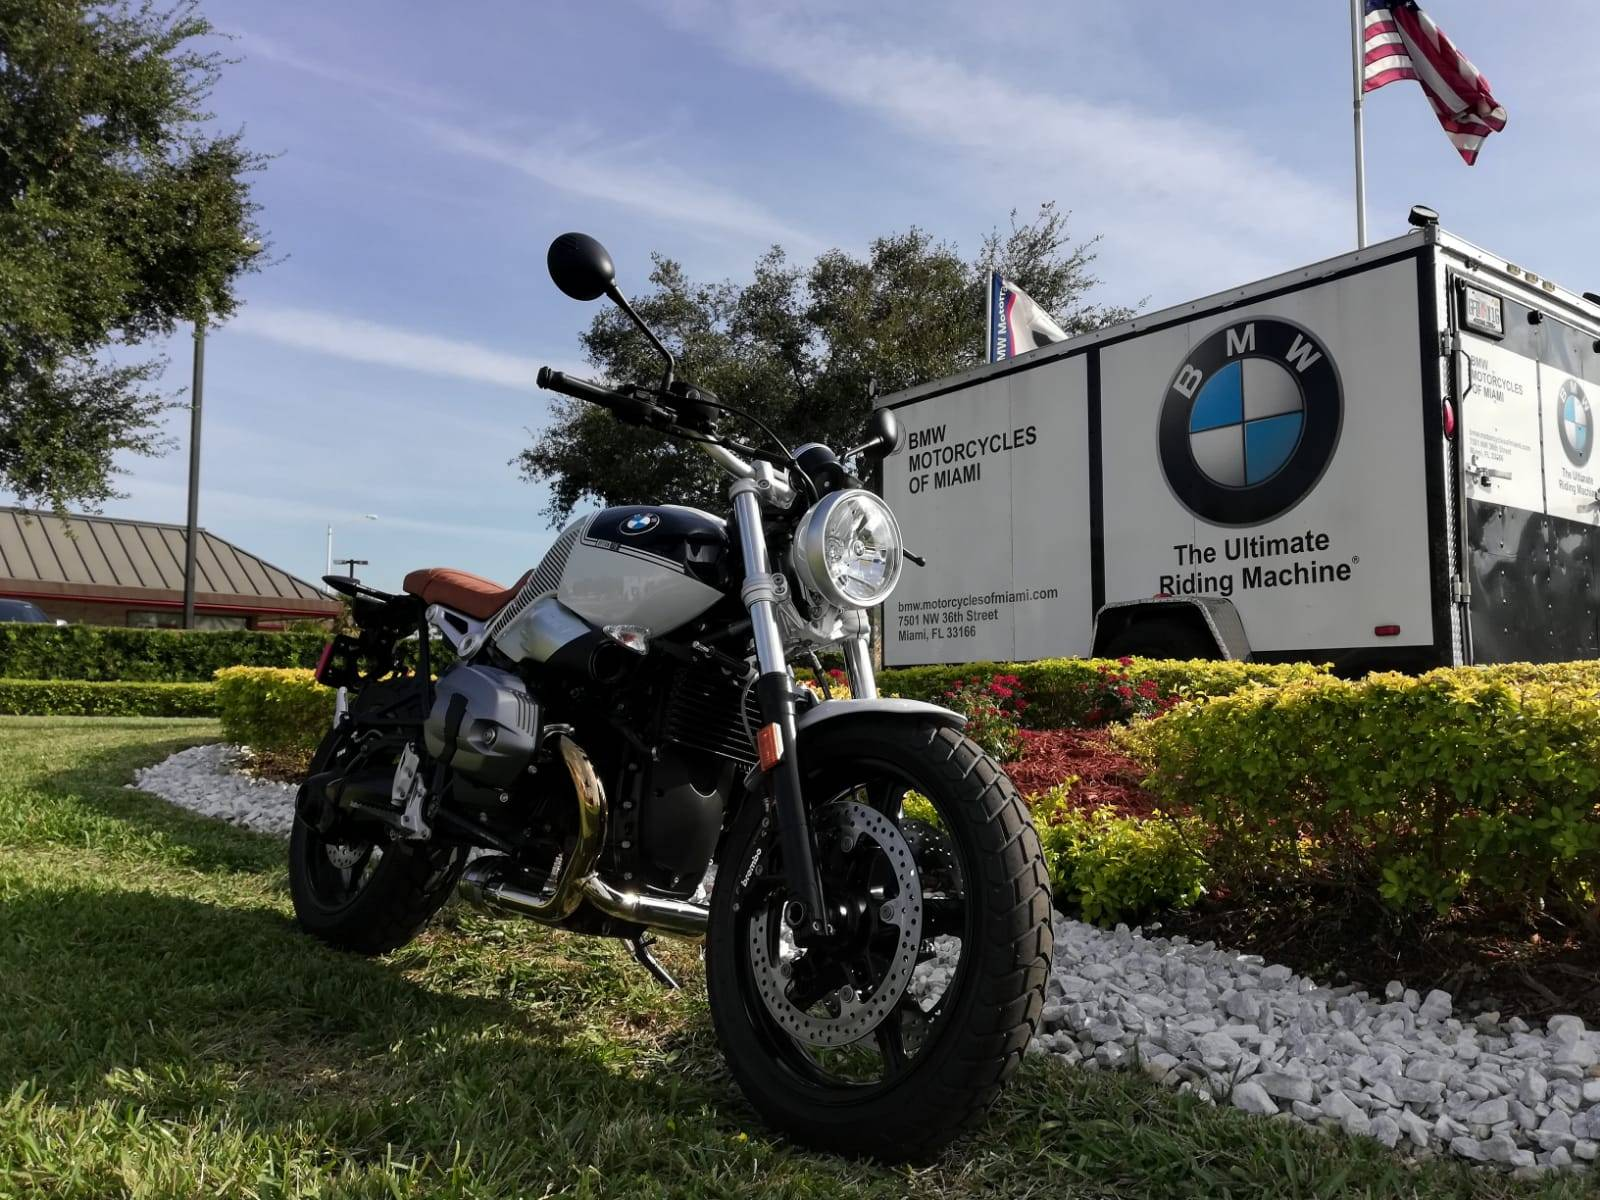 New 2019 BMW R nine T Scrambler for sale, BMW Scrambler for sale, BMW Motorcycle Scrambler, Scrambler, BMW Motorcycles of Miami, Motorcycles of Miami, Motorcycles Miami, New Motorcycles, Used Motorcycles, pre-owned. #BMWMotorcyclesOfMiami #MotorcyclesOfMiami. - Photo 11